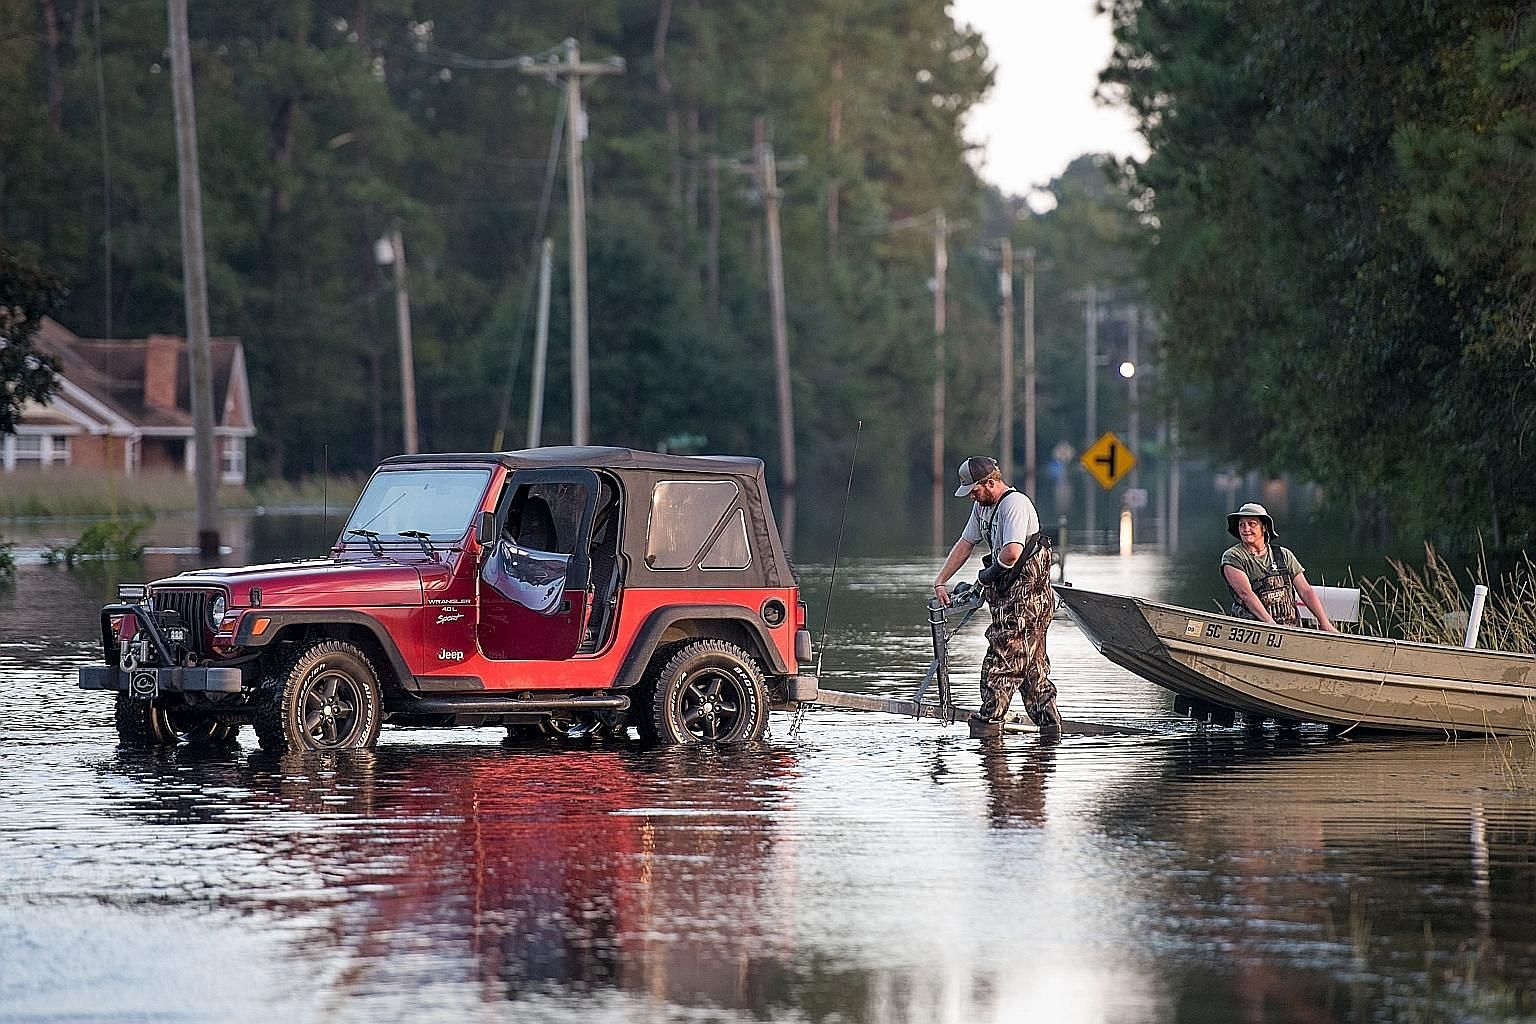 Flooding caused by Hurricane Florence in Bucksport, South Carolina, last week. The United States' strong economic performance could be dented by extreme weather like Hurricane Florence, which could hobble job creation in the affected regions.